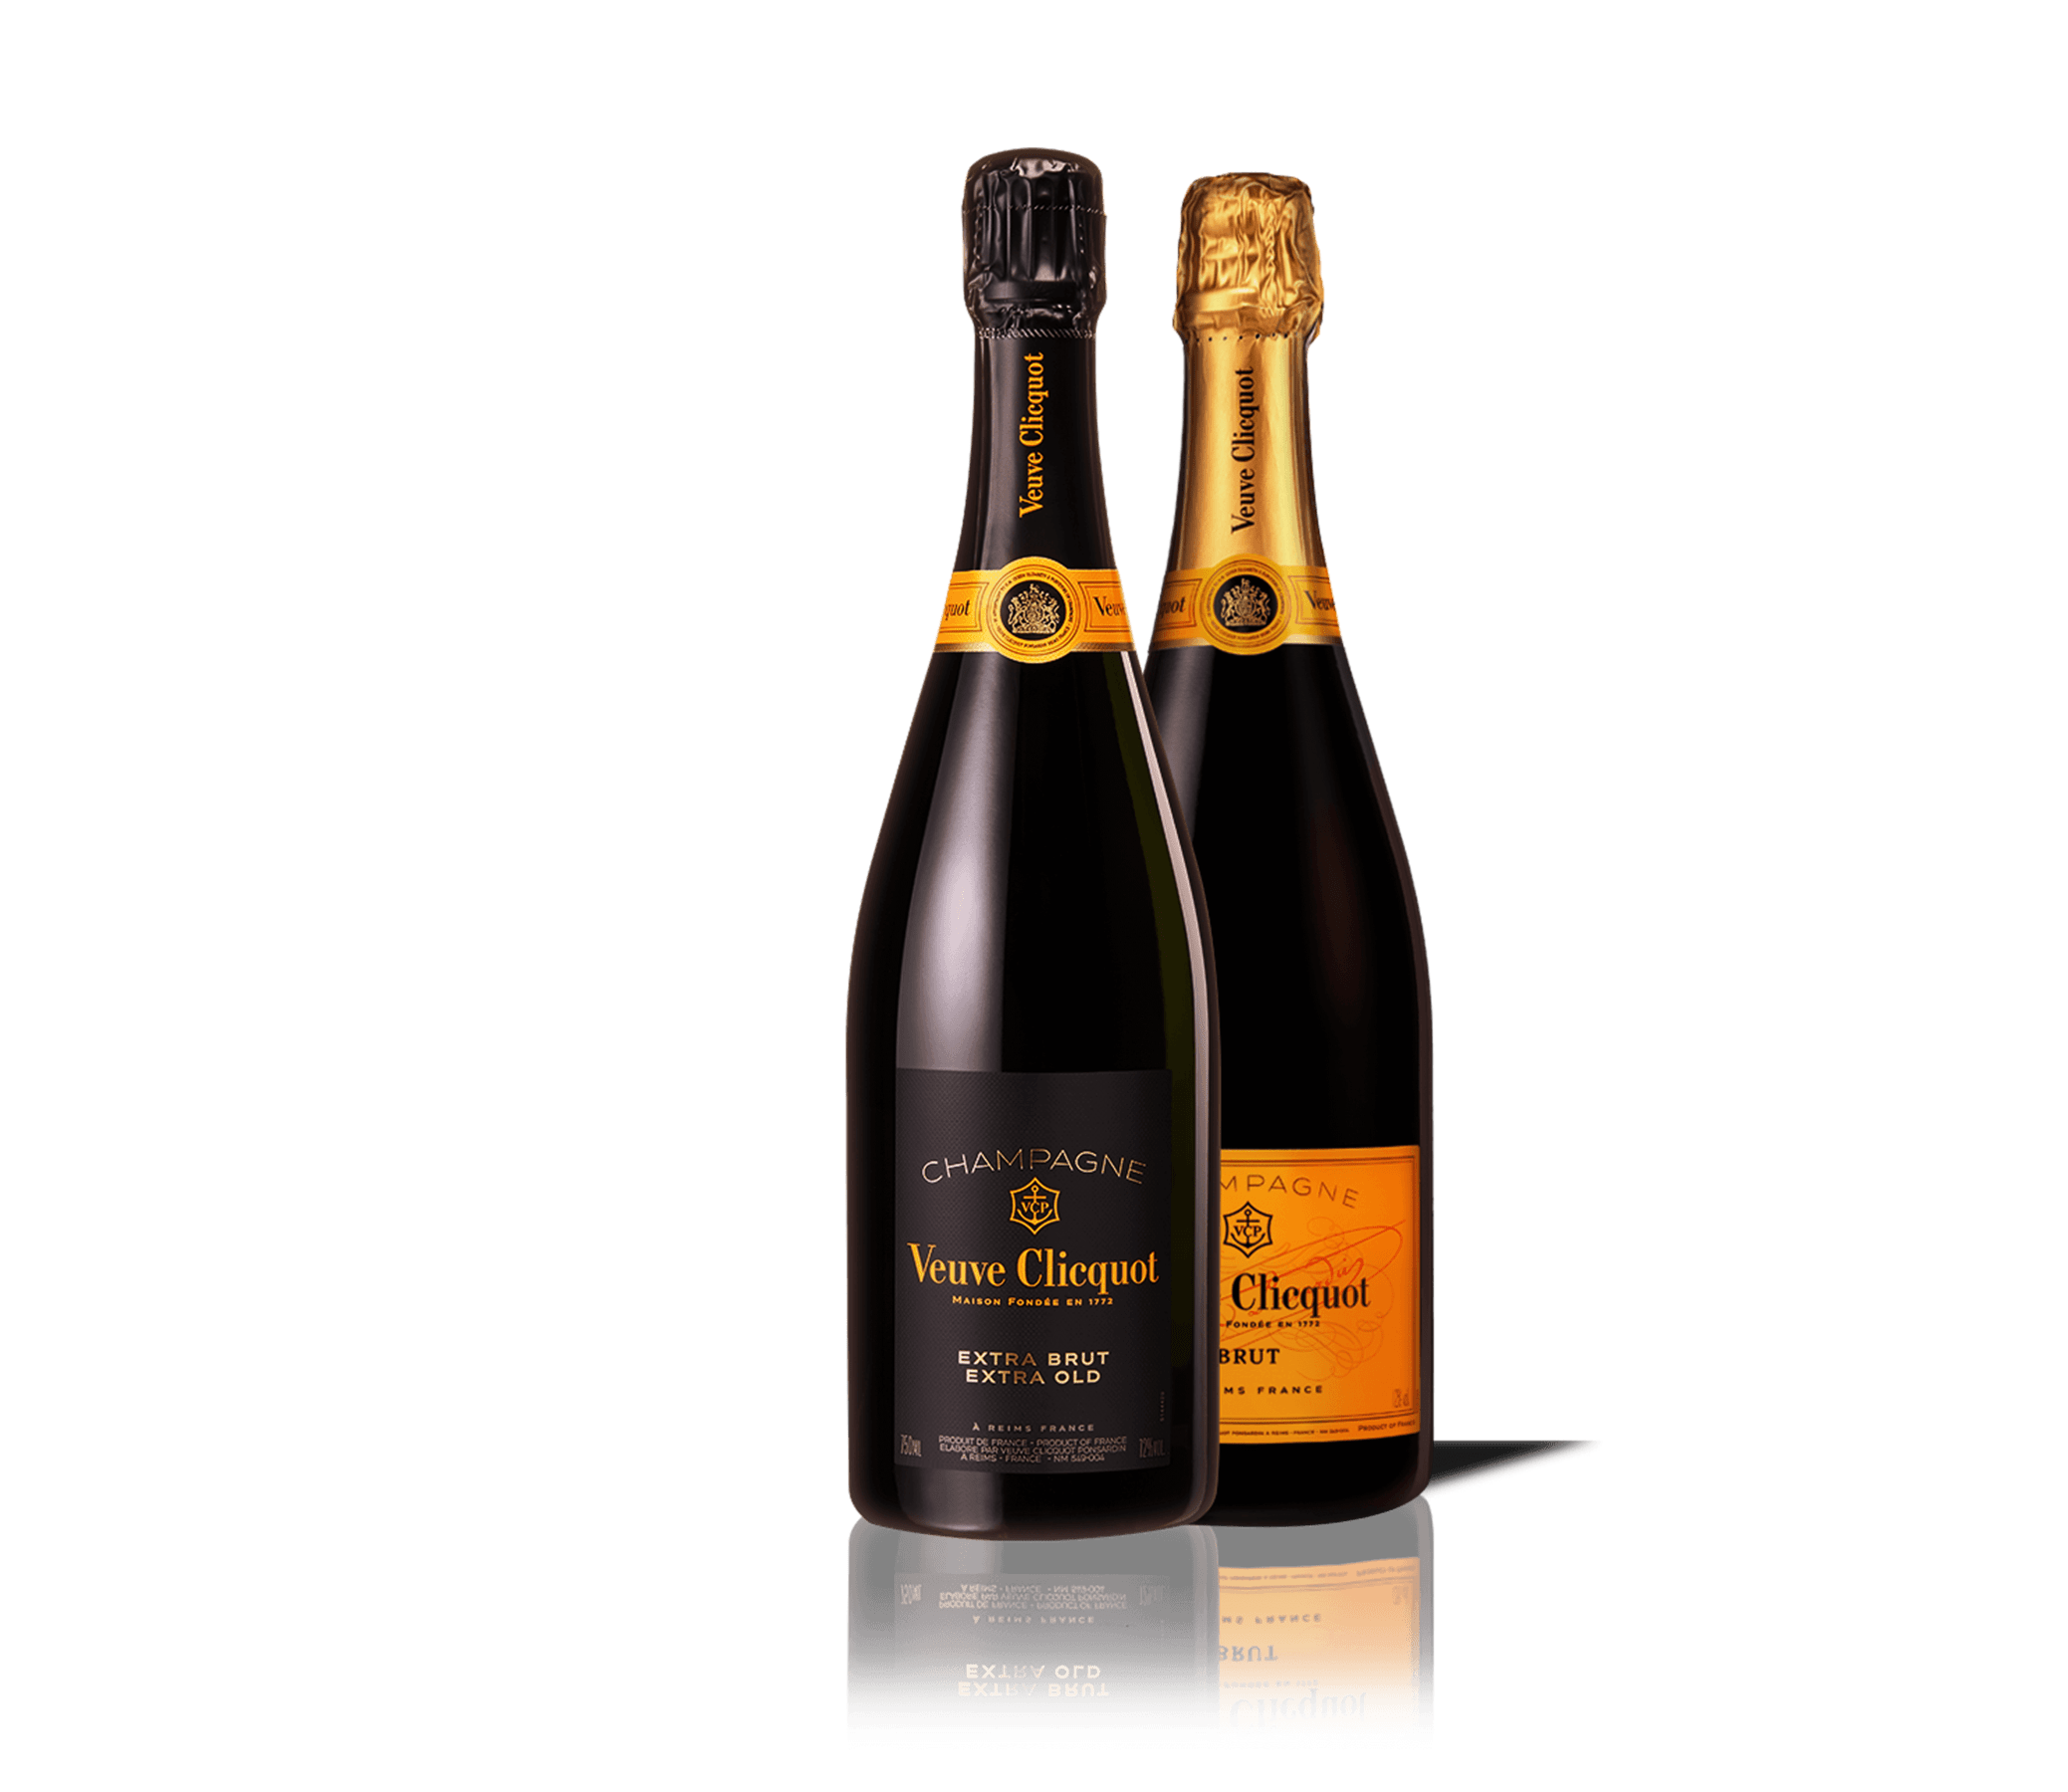 Bottle Veuve Clicquot Champagne Extra Brut Extra Old 1